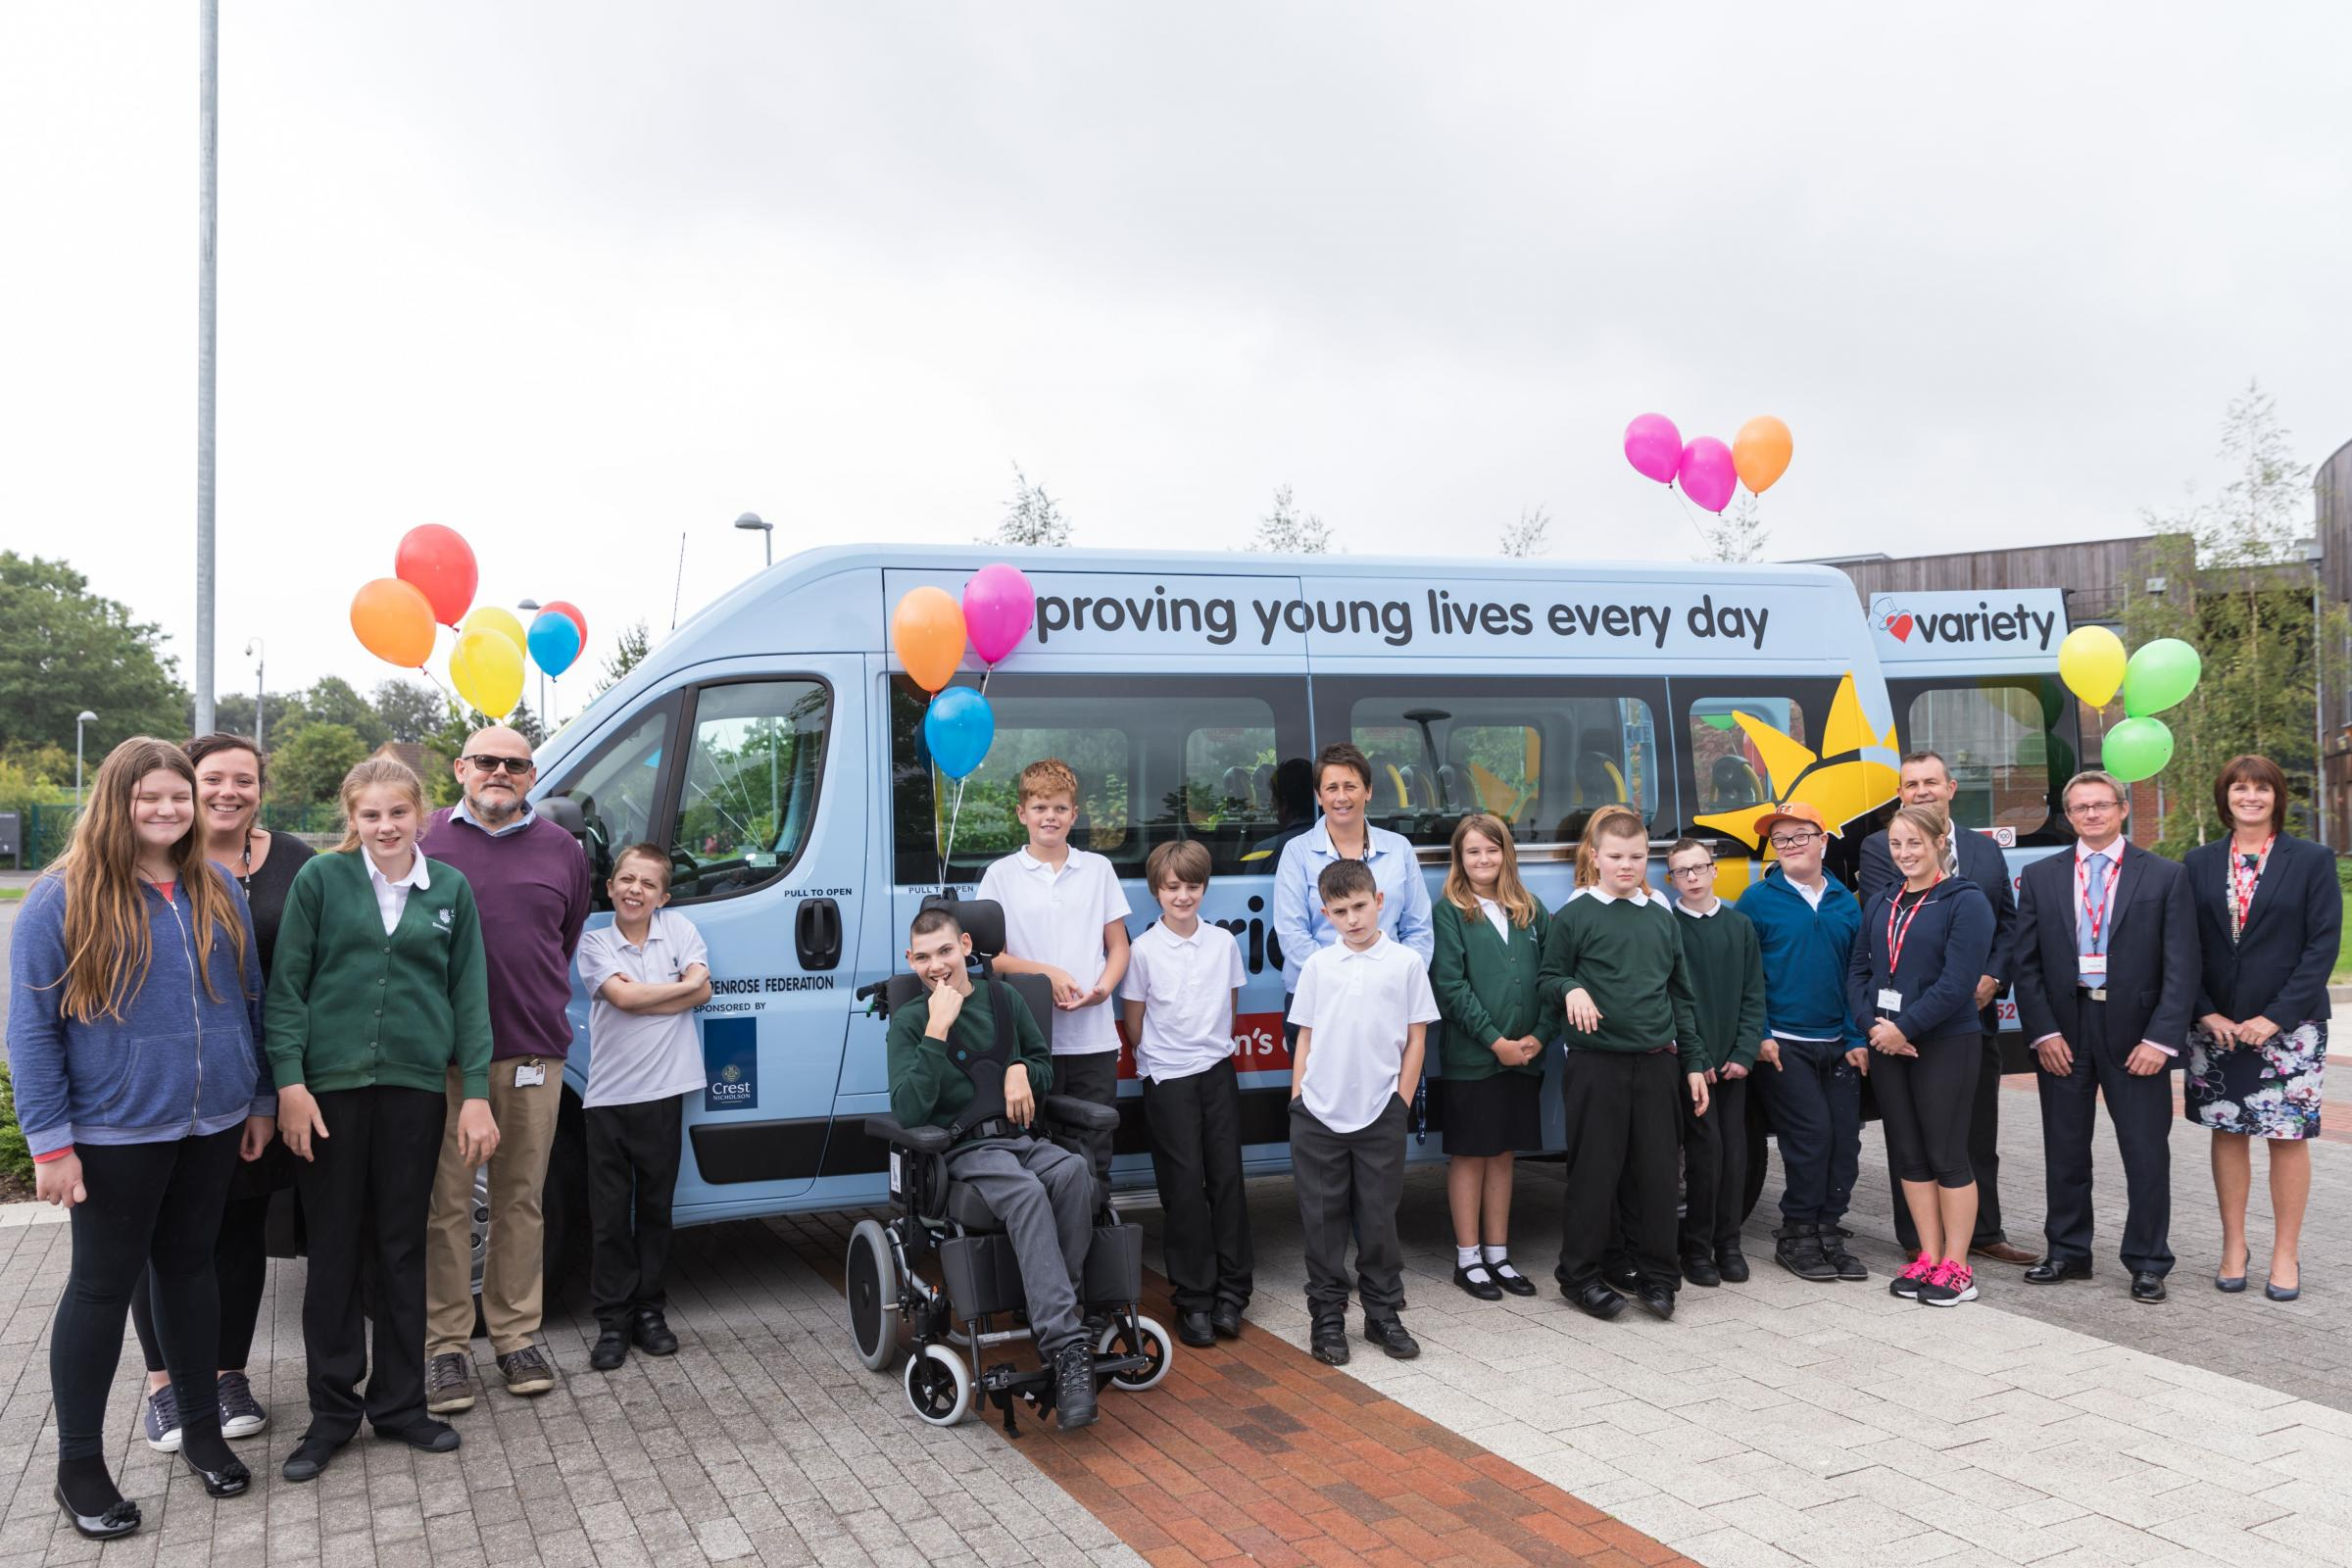 DELIGHTED: Staff, students and representatives from Crest Nicholson and The Variety Club in front of the new bus. Picture by Justin Krause.